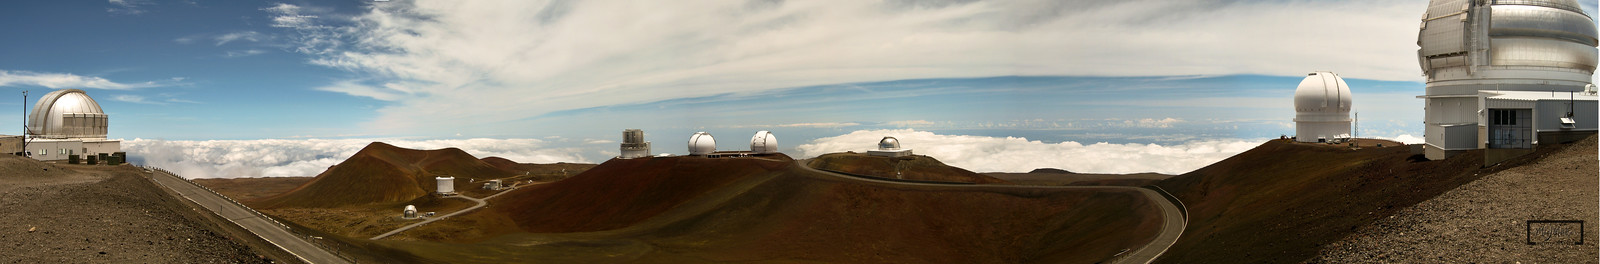 This was taken near the summit of Mauna Kea, looking at a number of the observatories which are an independent collection of astronomical research facilities on the Big Island of Hawai'i.  Some of these are public and allow visitors to use the equipment.  © Copyright m2 Photography - Michael J. Mikkelson 2009. All Rights Reserved. Images can not be used without permission.